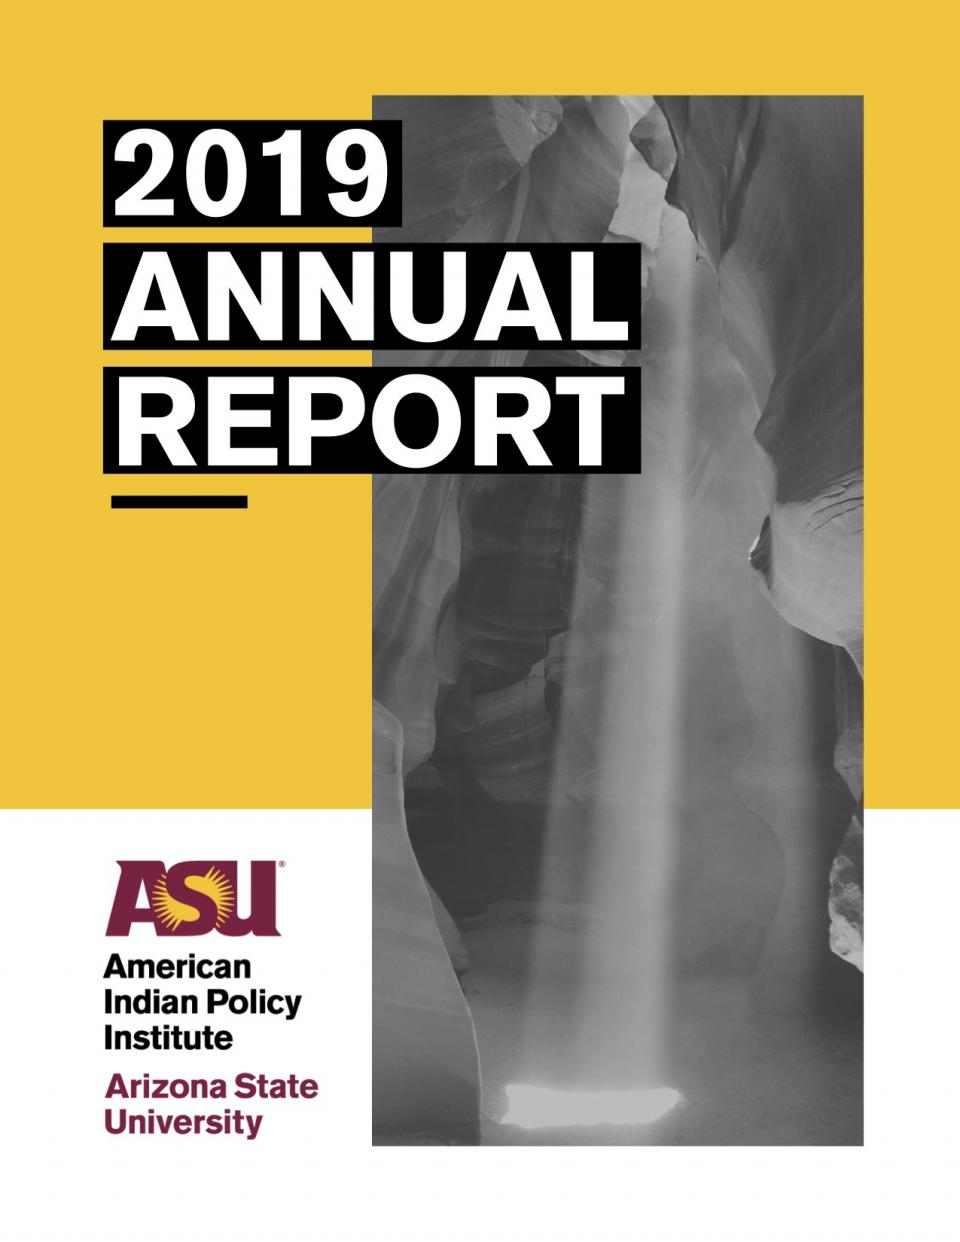 2019 Annual Report Cover Image